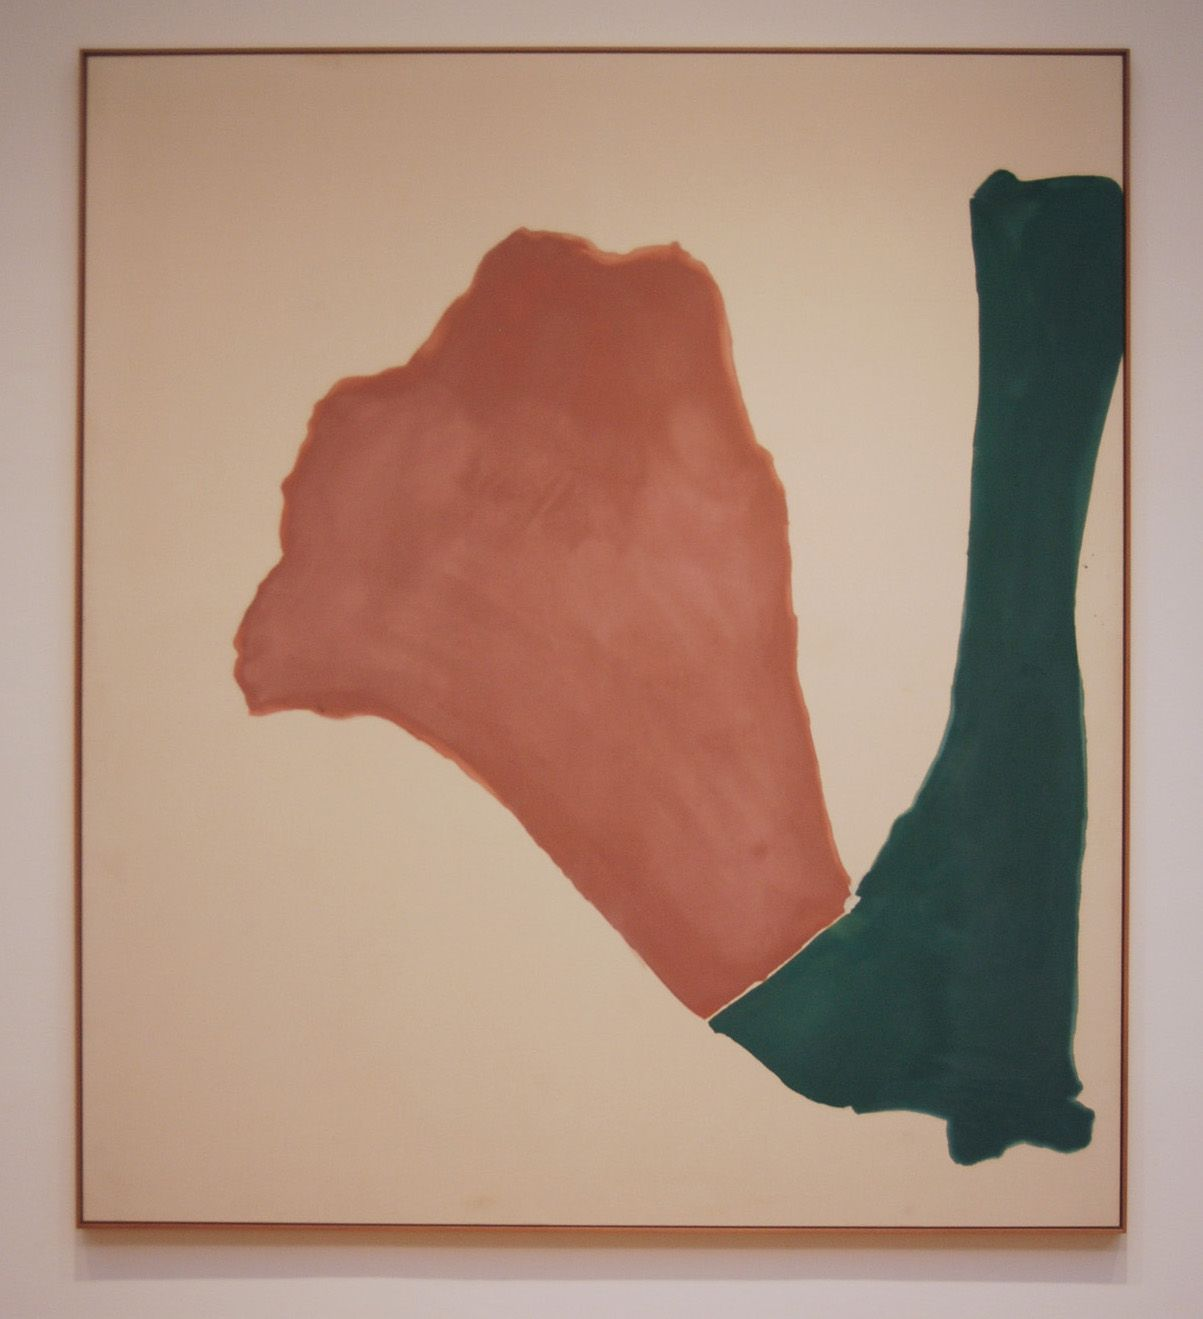 Helen Frankenthaler Em Hurricane Flag Em 1969 This Painting Is Being Donated By The Corcoran To The Kreeger Museum Courtesy Of T Art Art World Painting